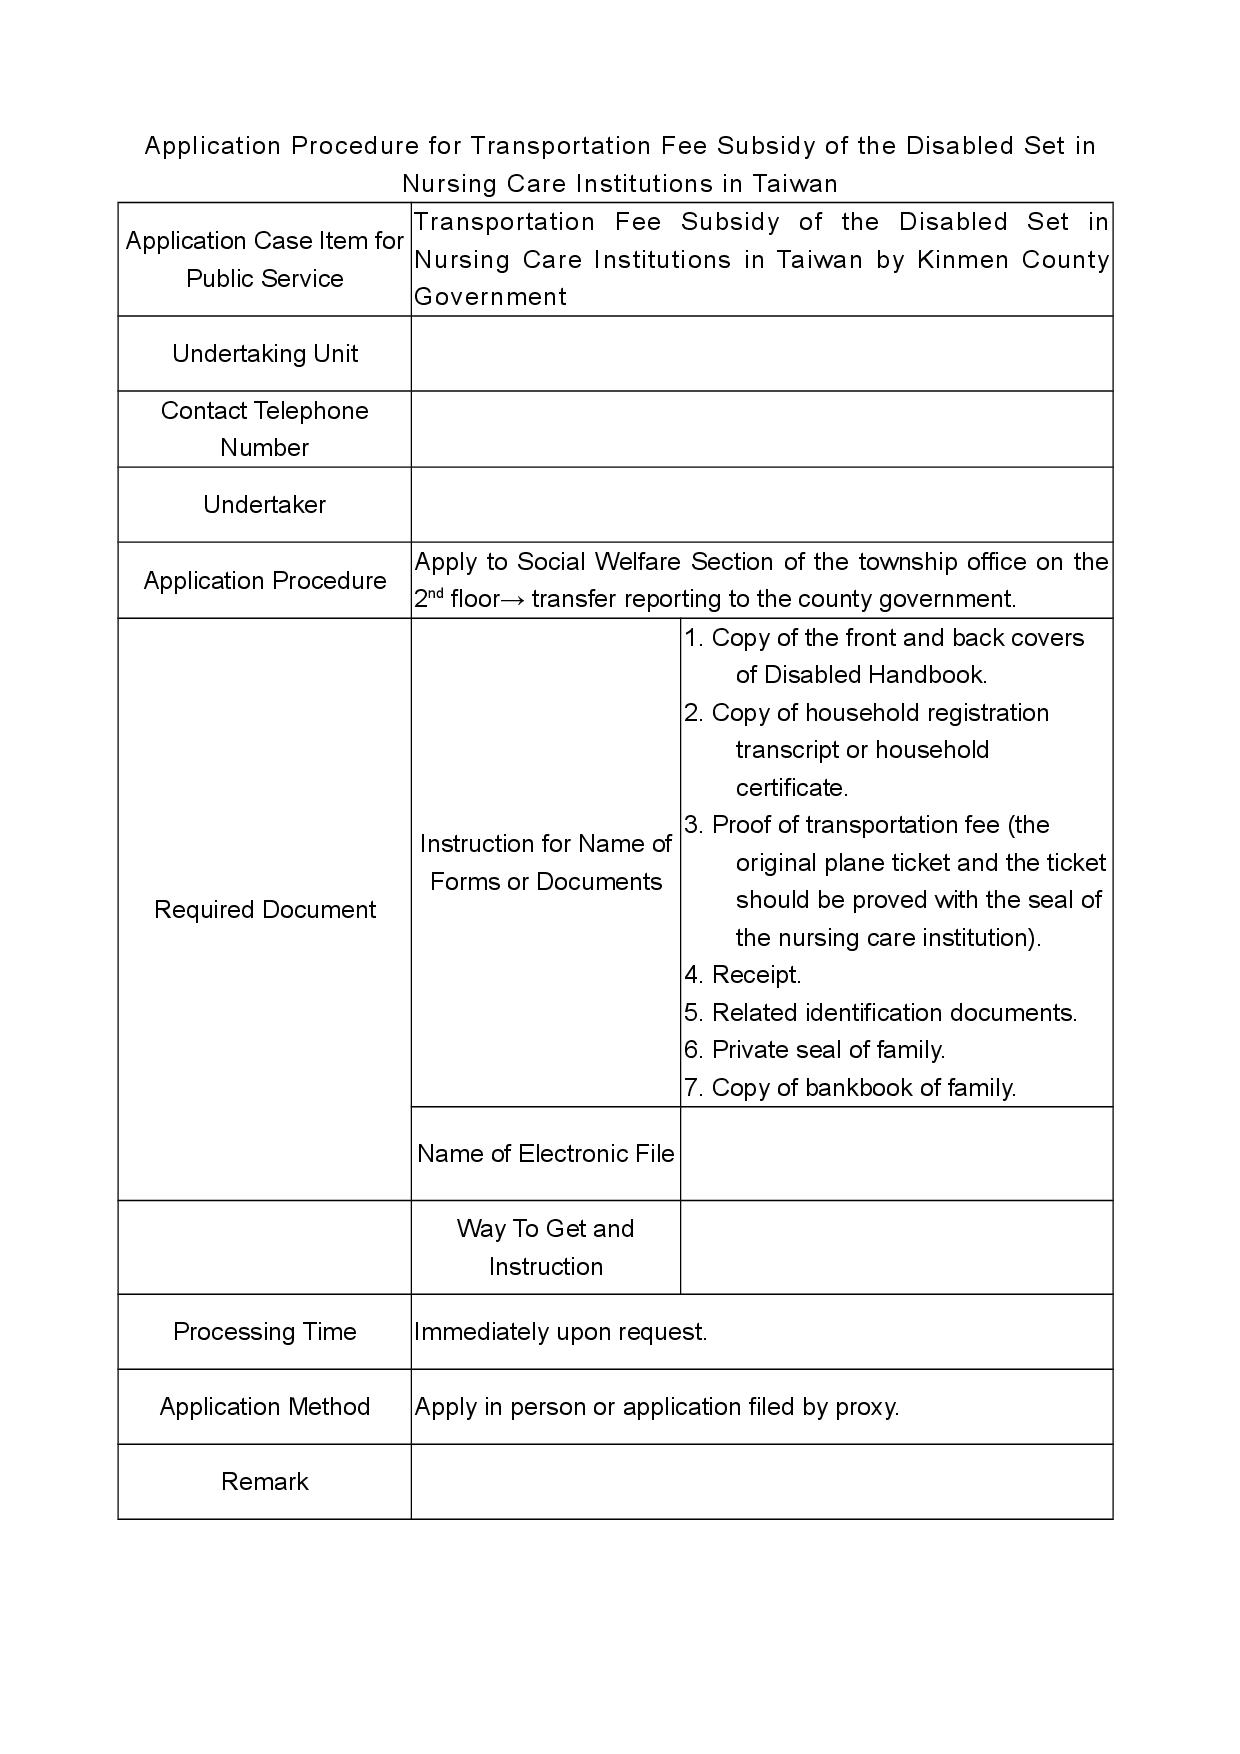 Application Procedure for Transportation Fee Subsidy of the Disabled Set in Nursing Care Institutions in Taiwan